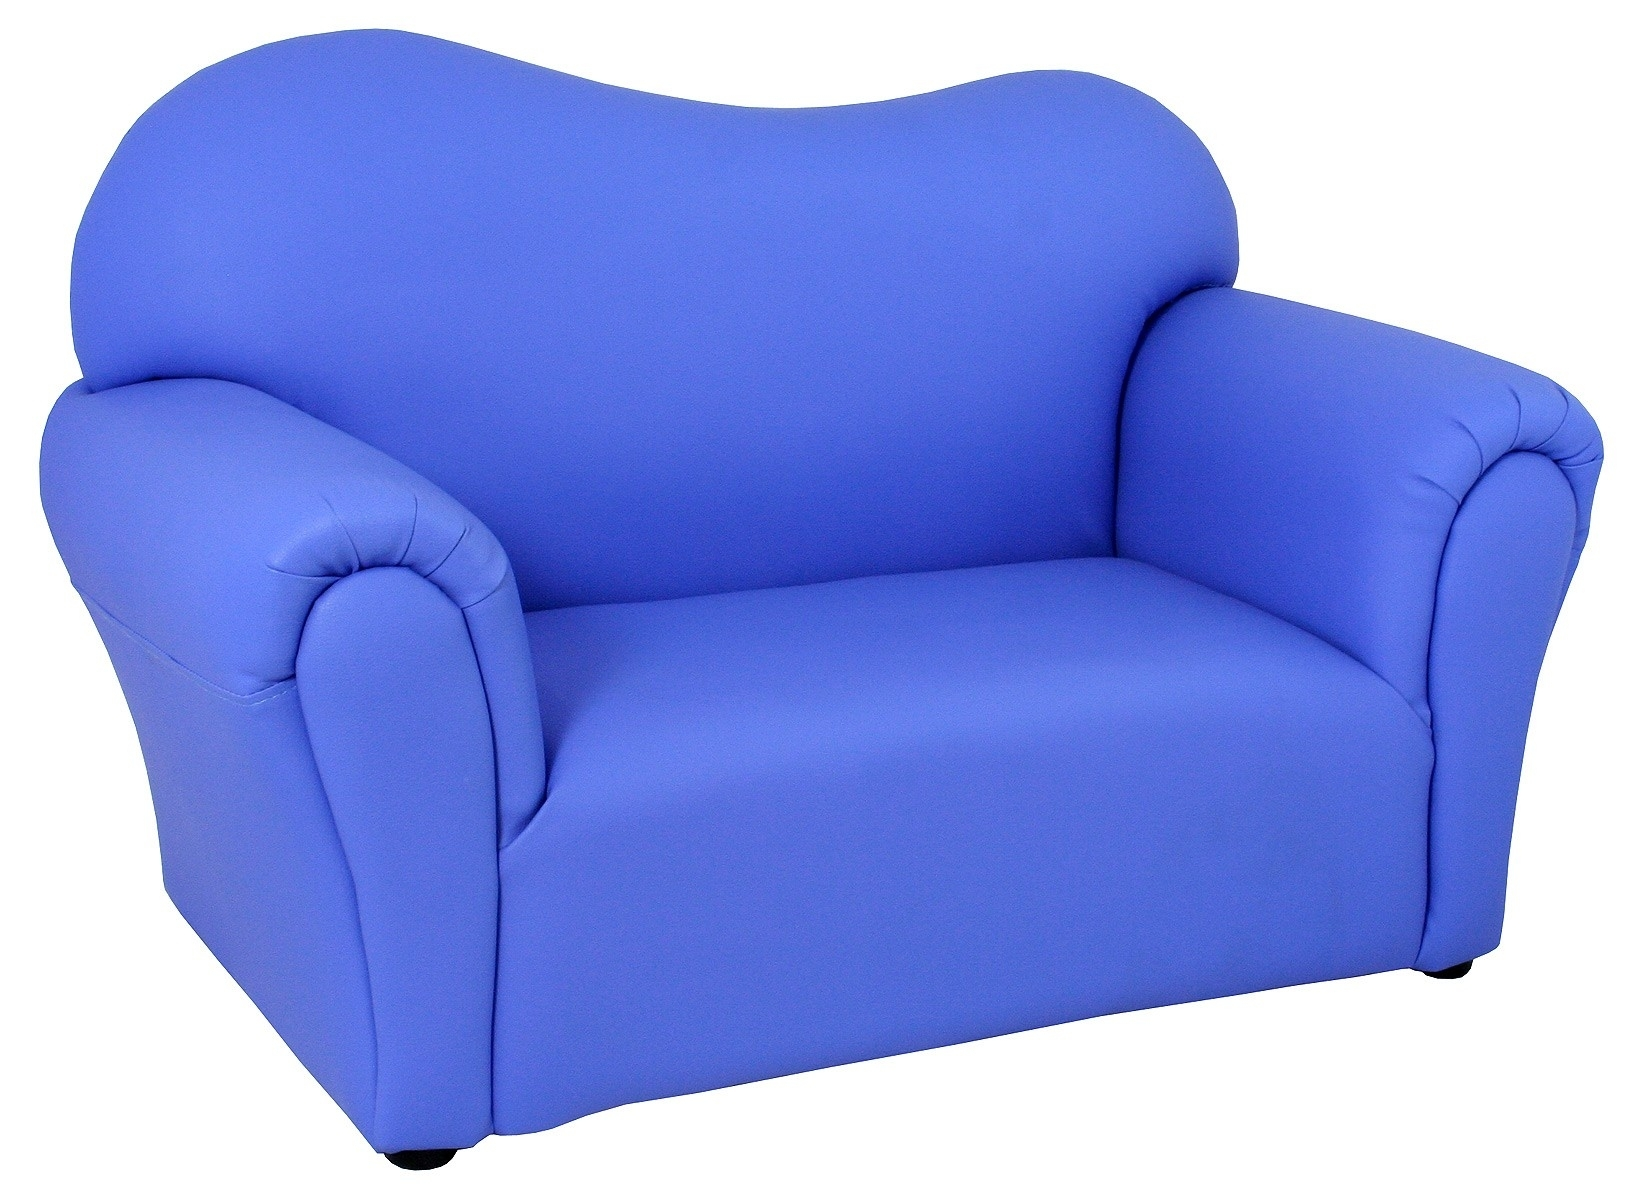 Childrens Blue Mini Sofa – Be Fabulous! Intended For Childrens Sofas (Image 1 of 10)